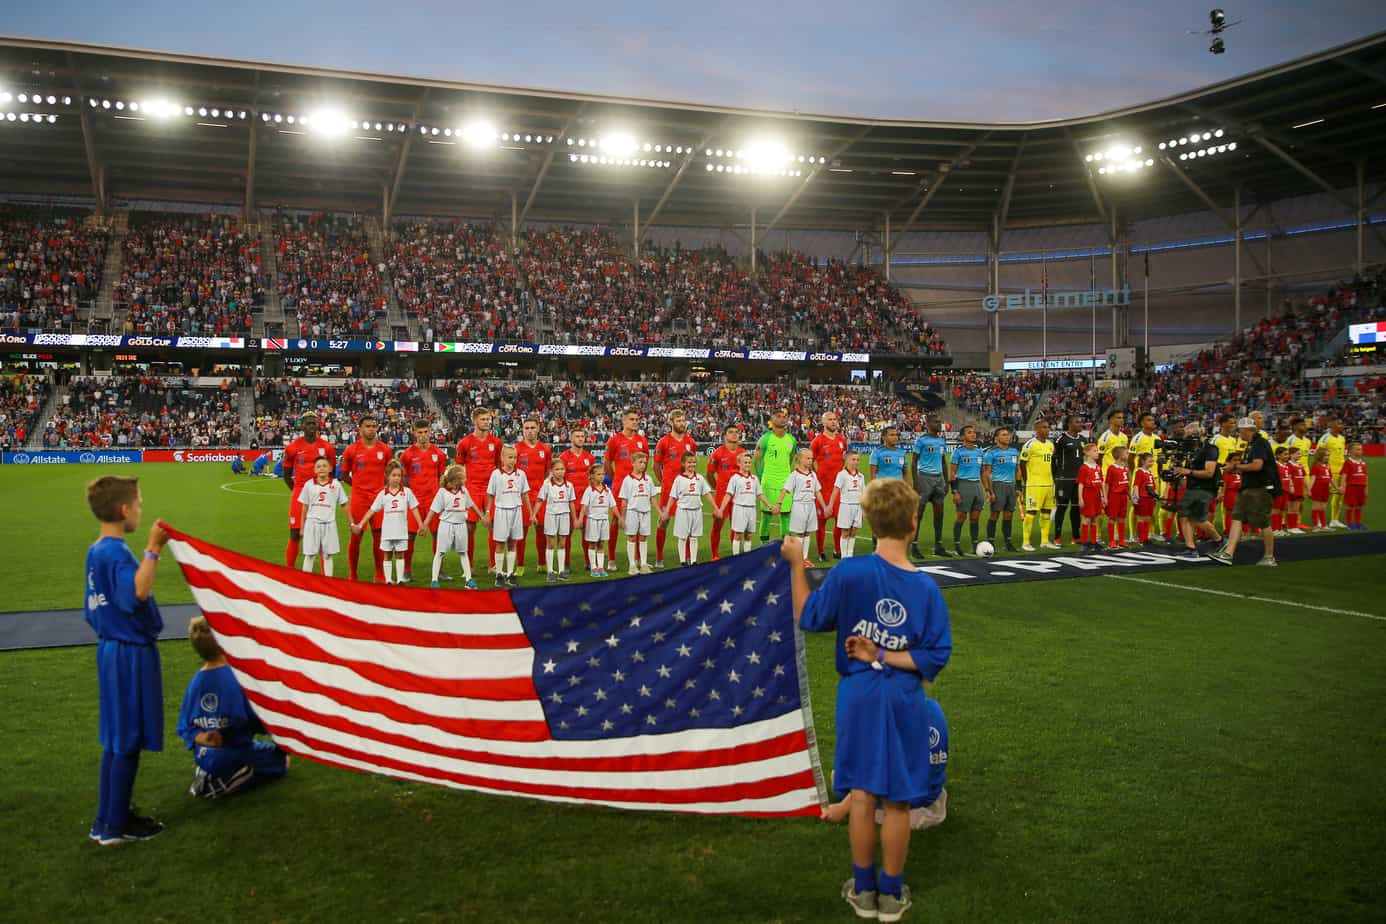 USA vs Guyana at the Gold Cup 2019